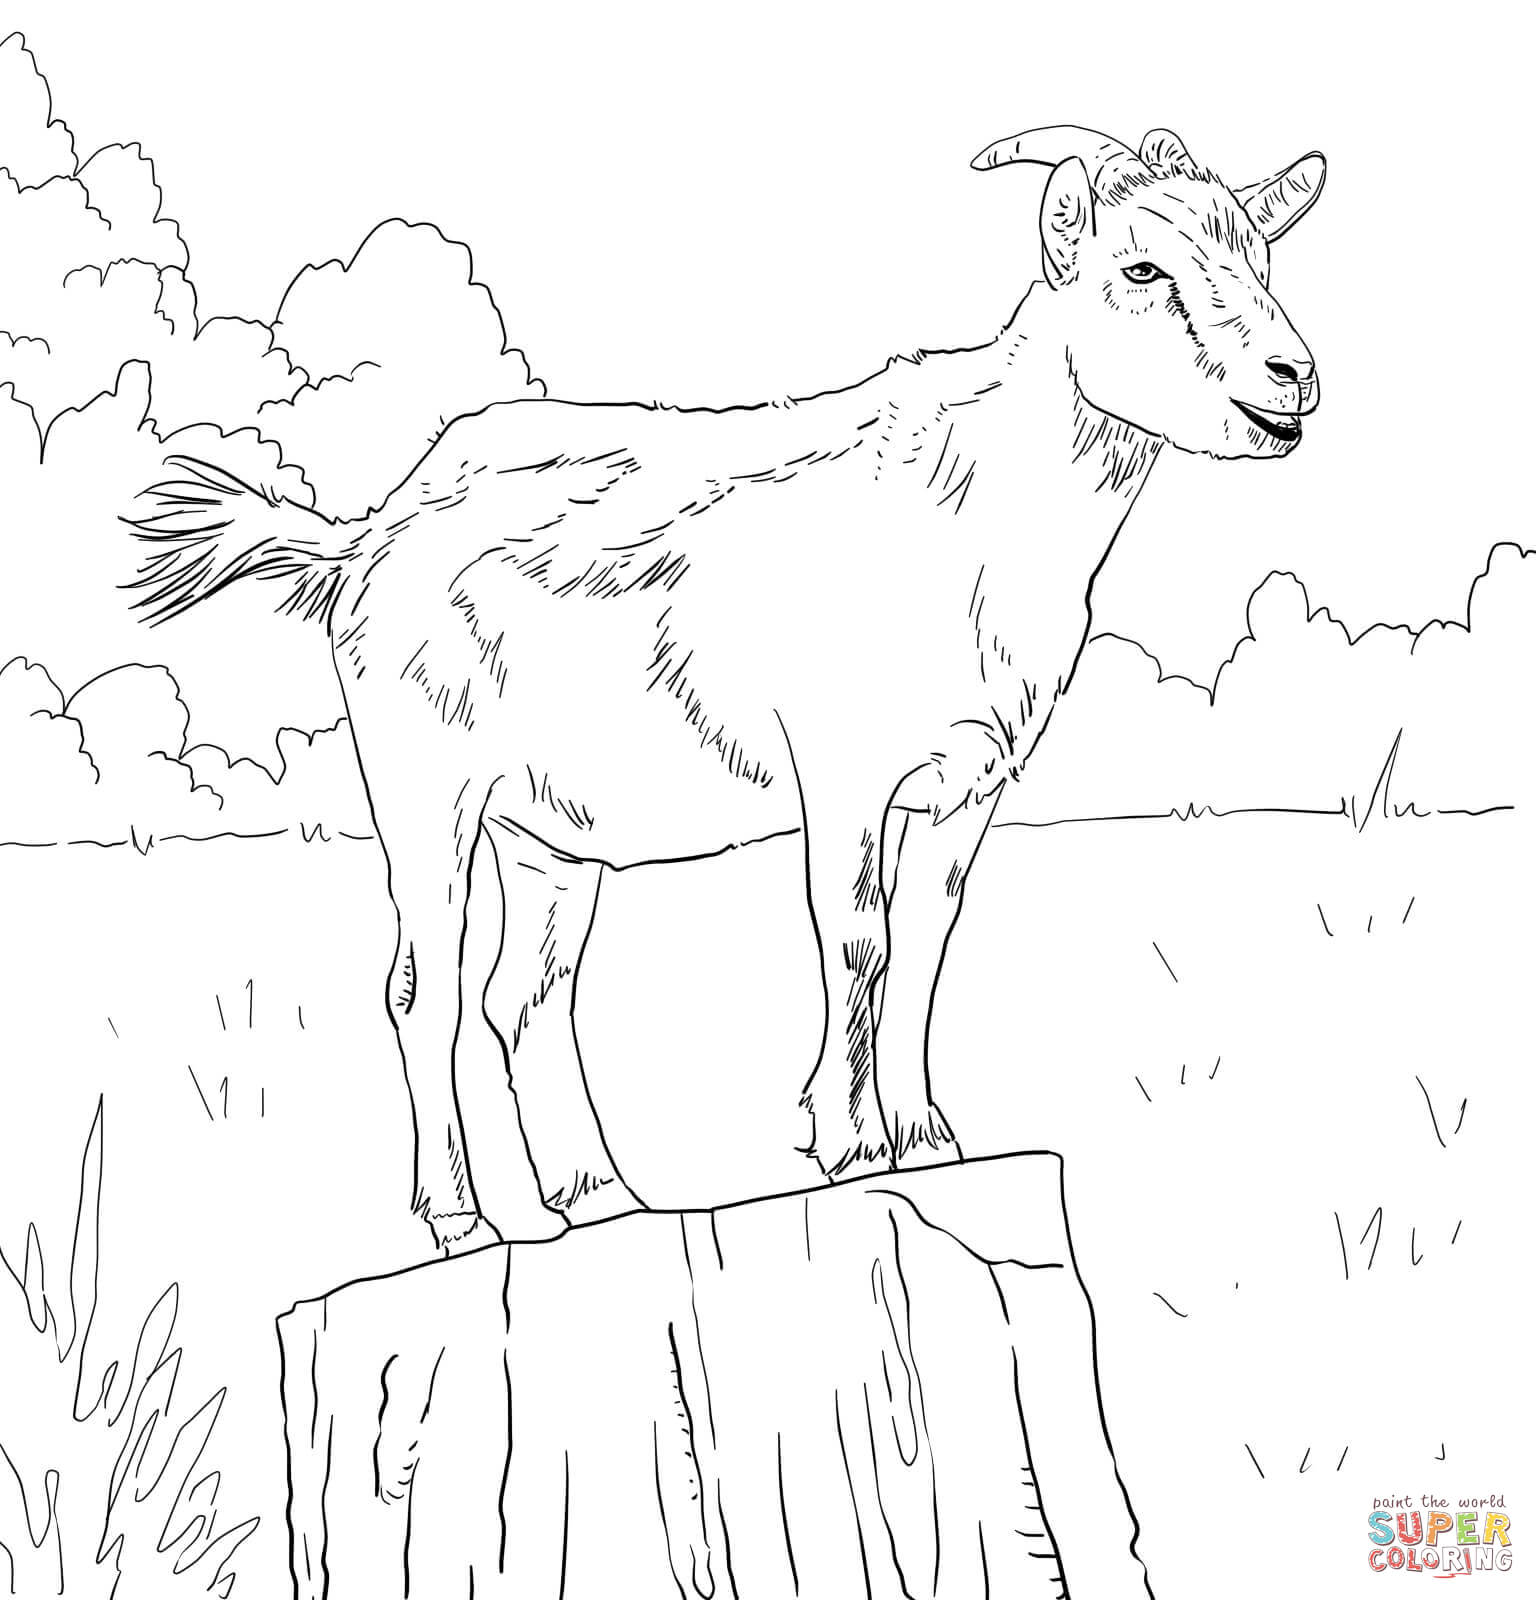 goat-coloring-page-0005-q1